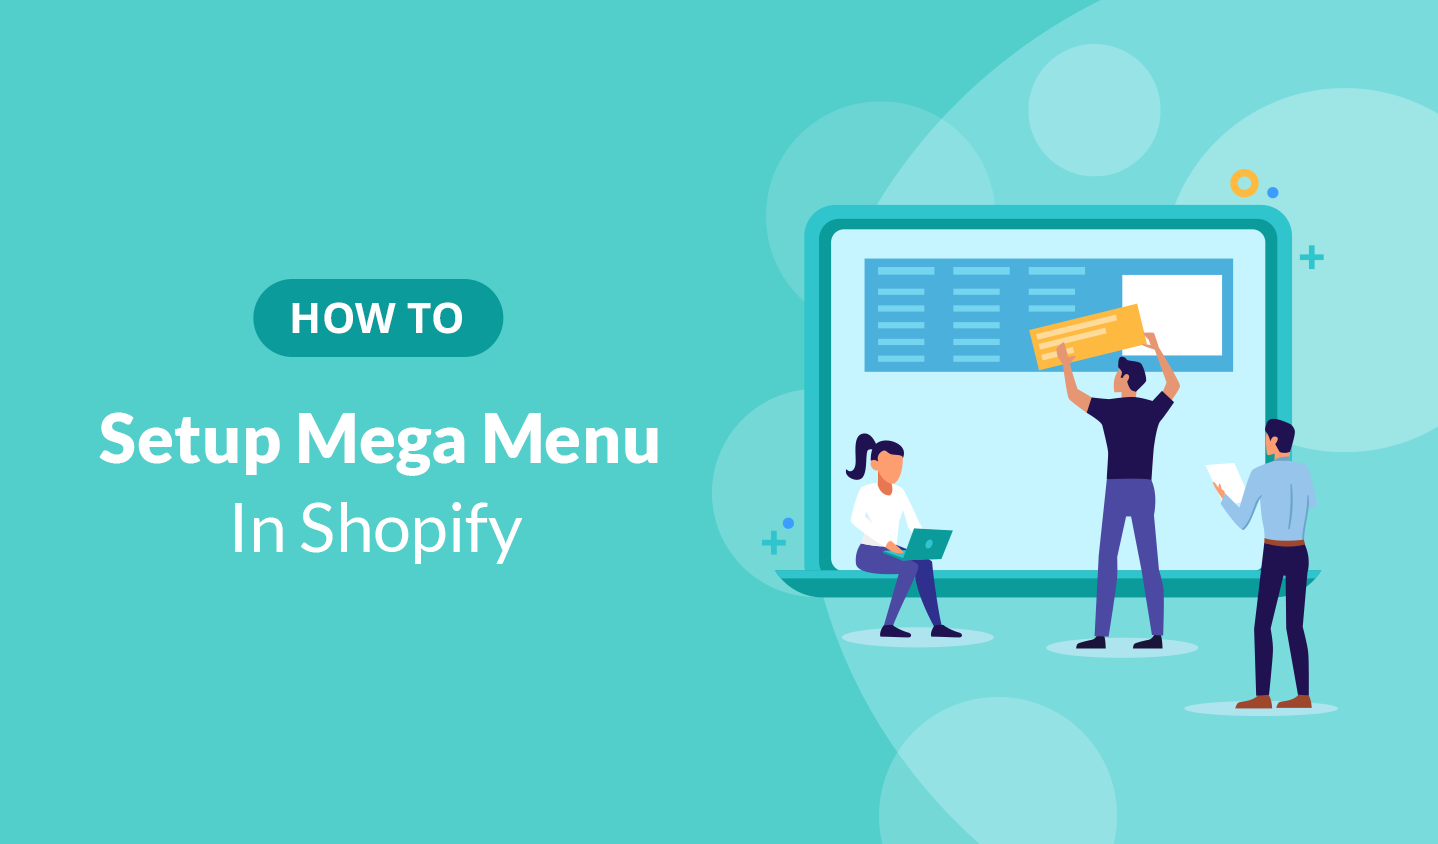 How to set up a Mega Menu in Shopify